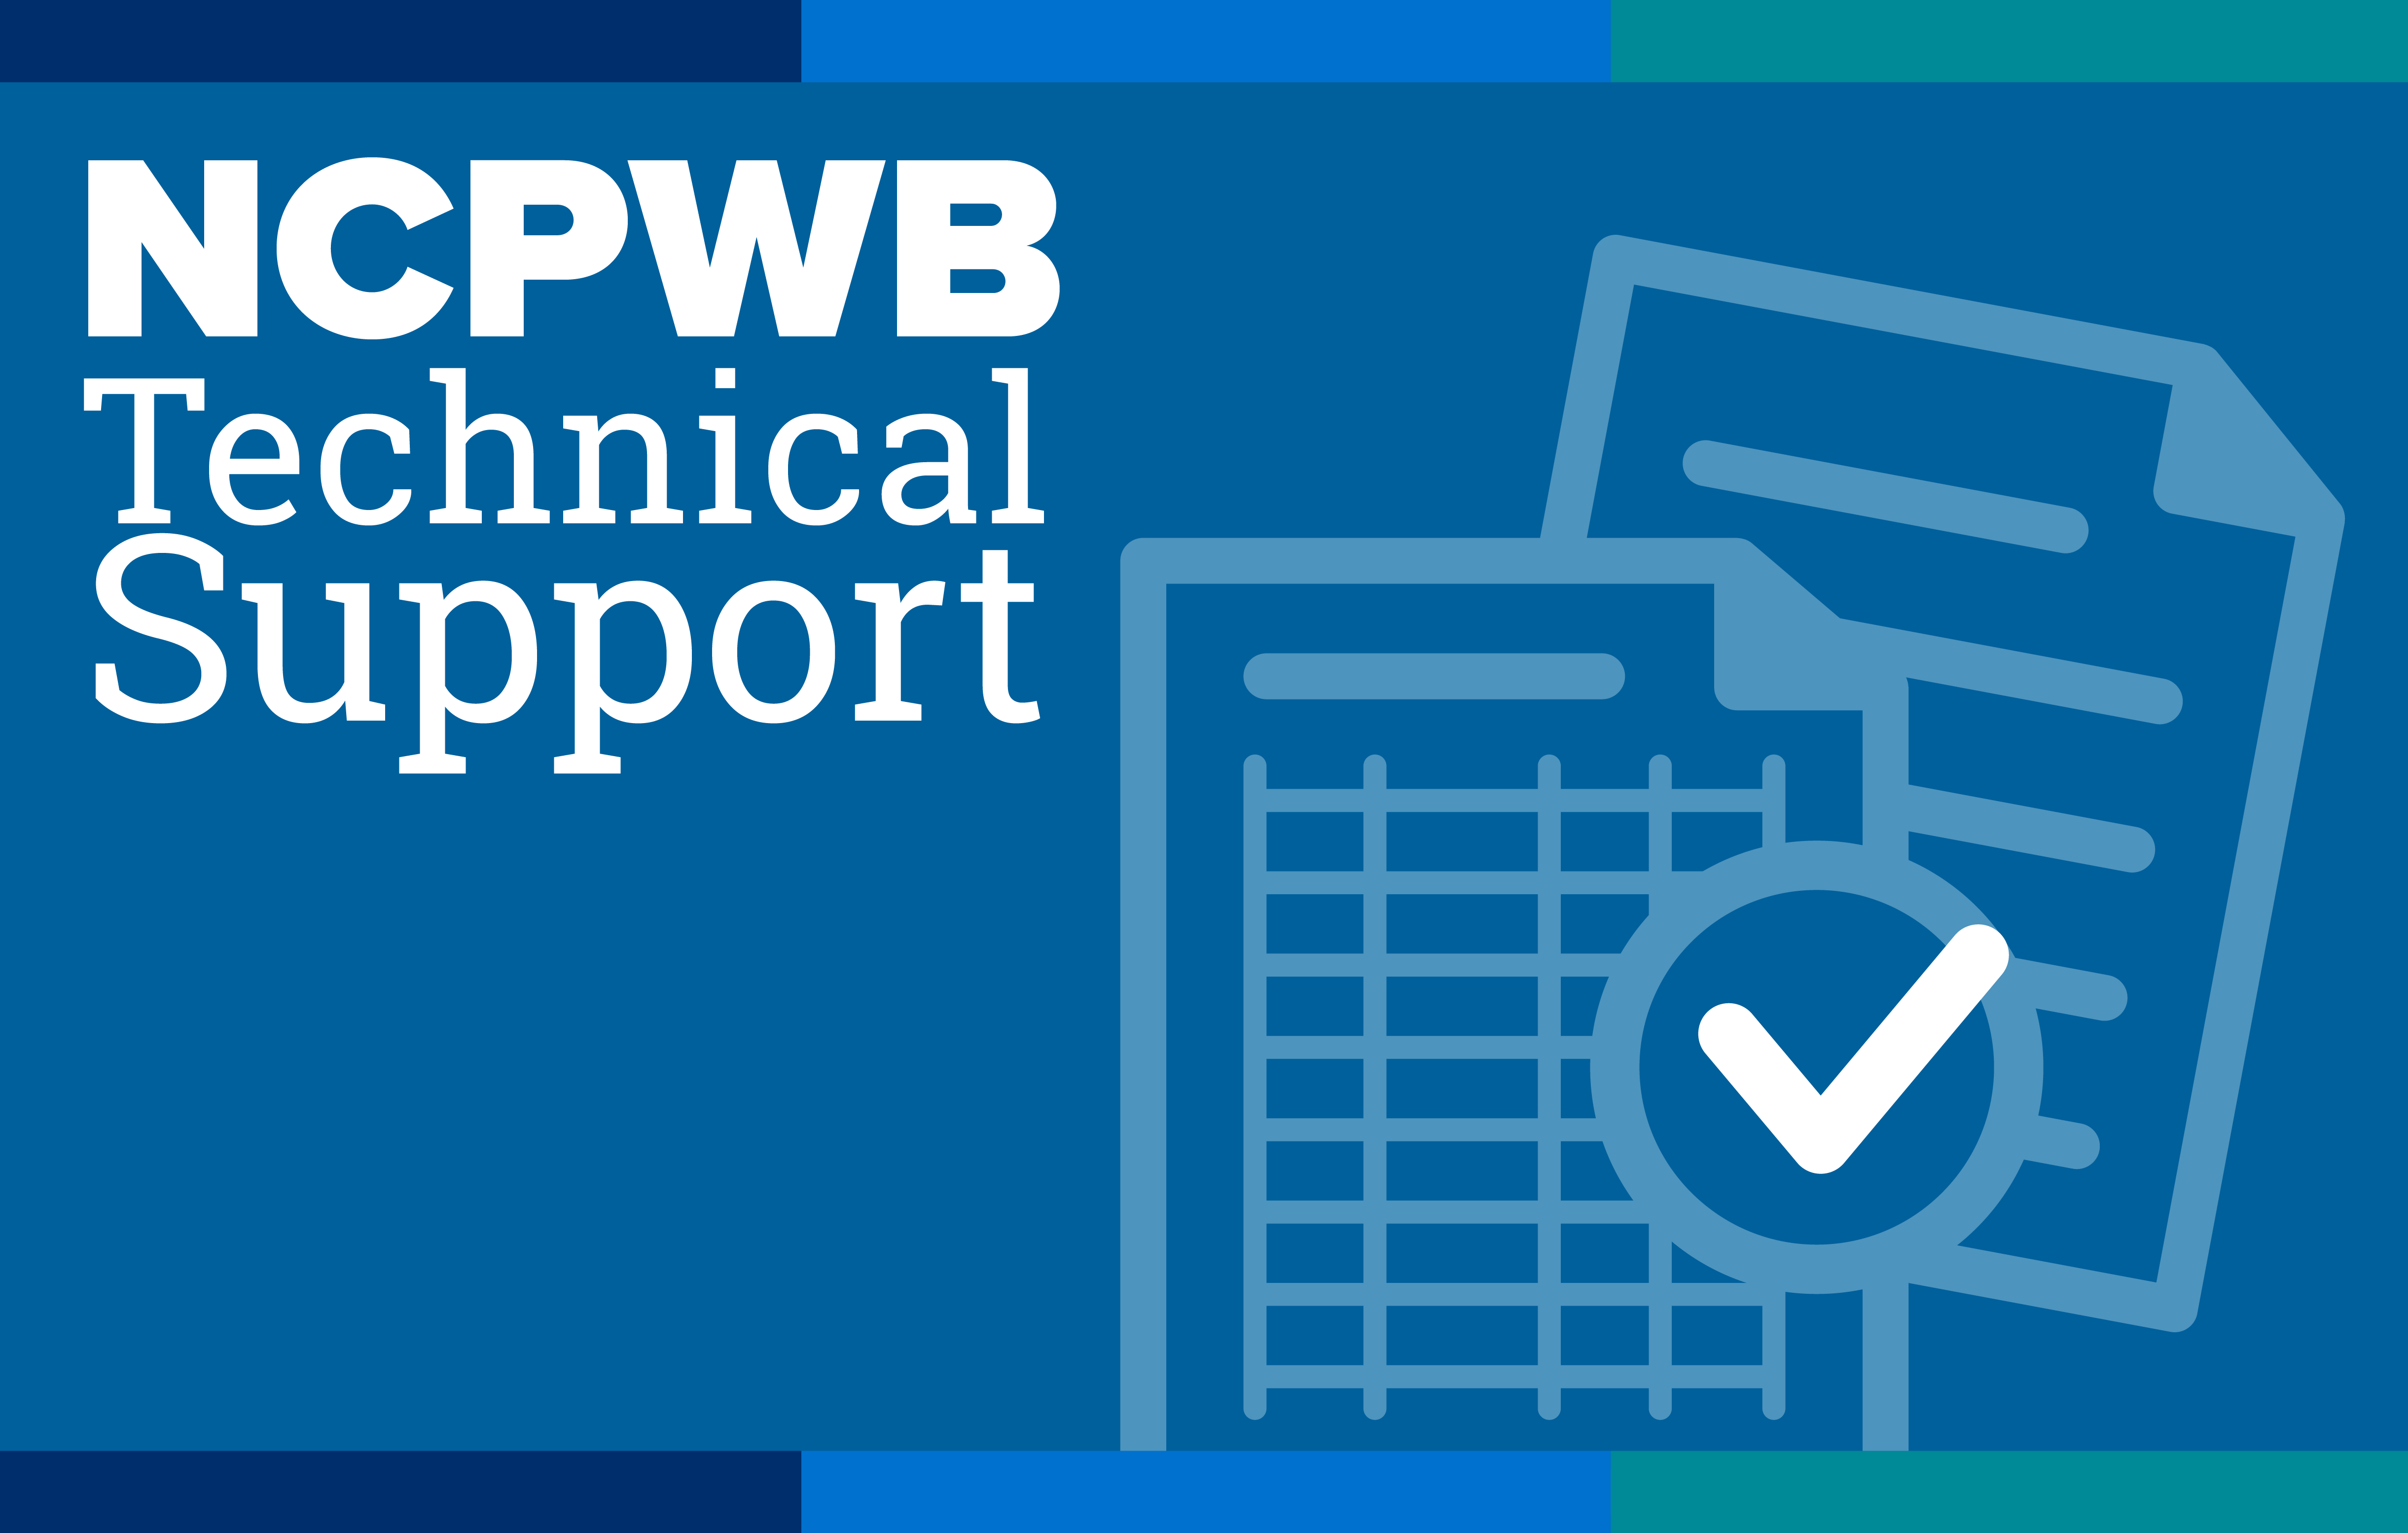 NCPWB Technical Support